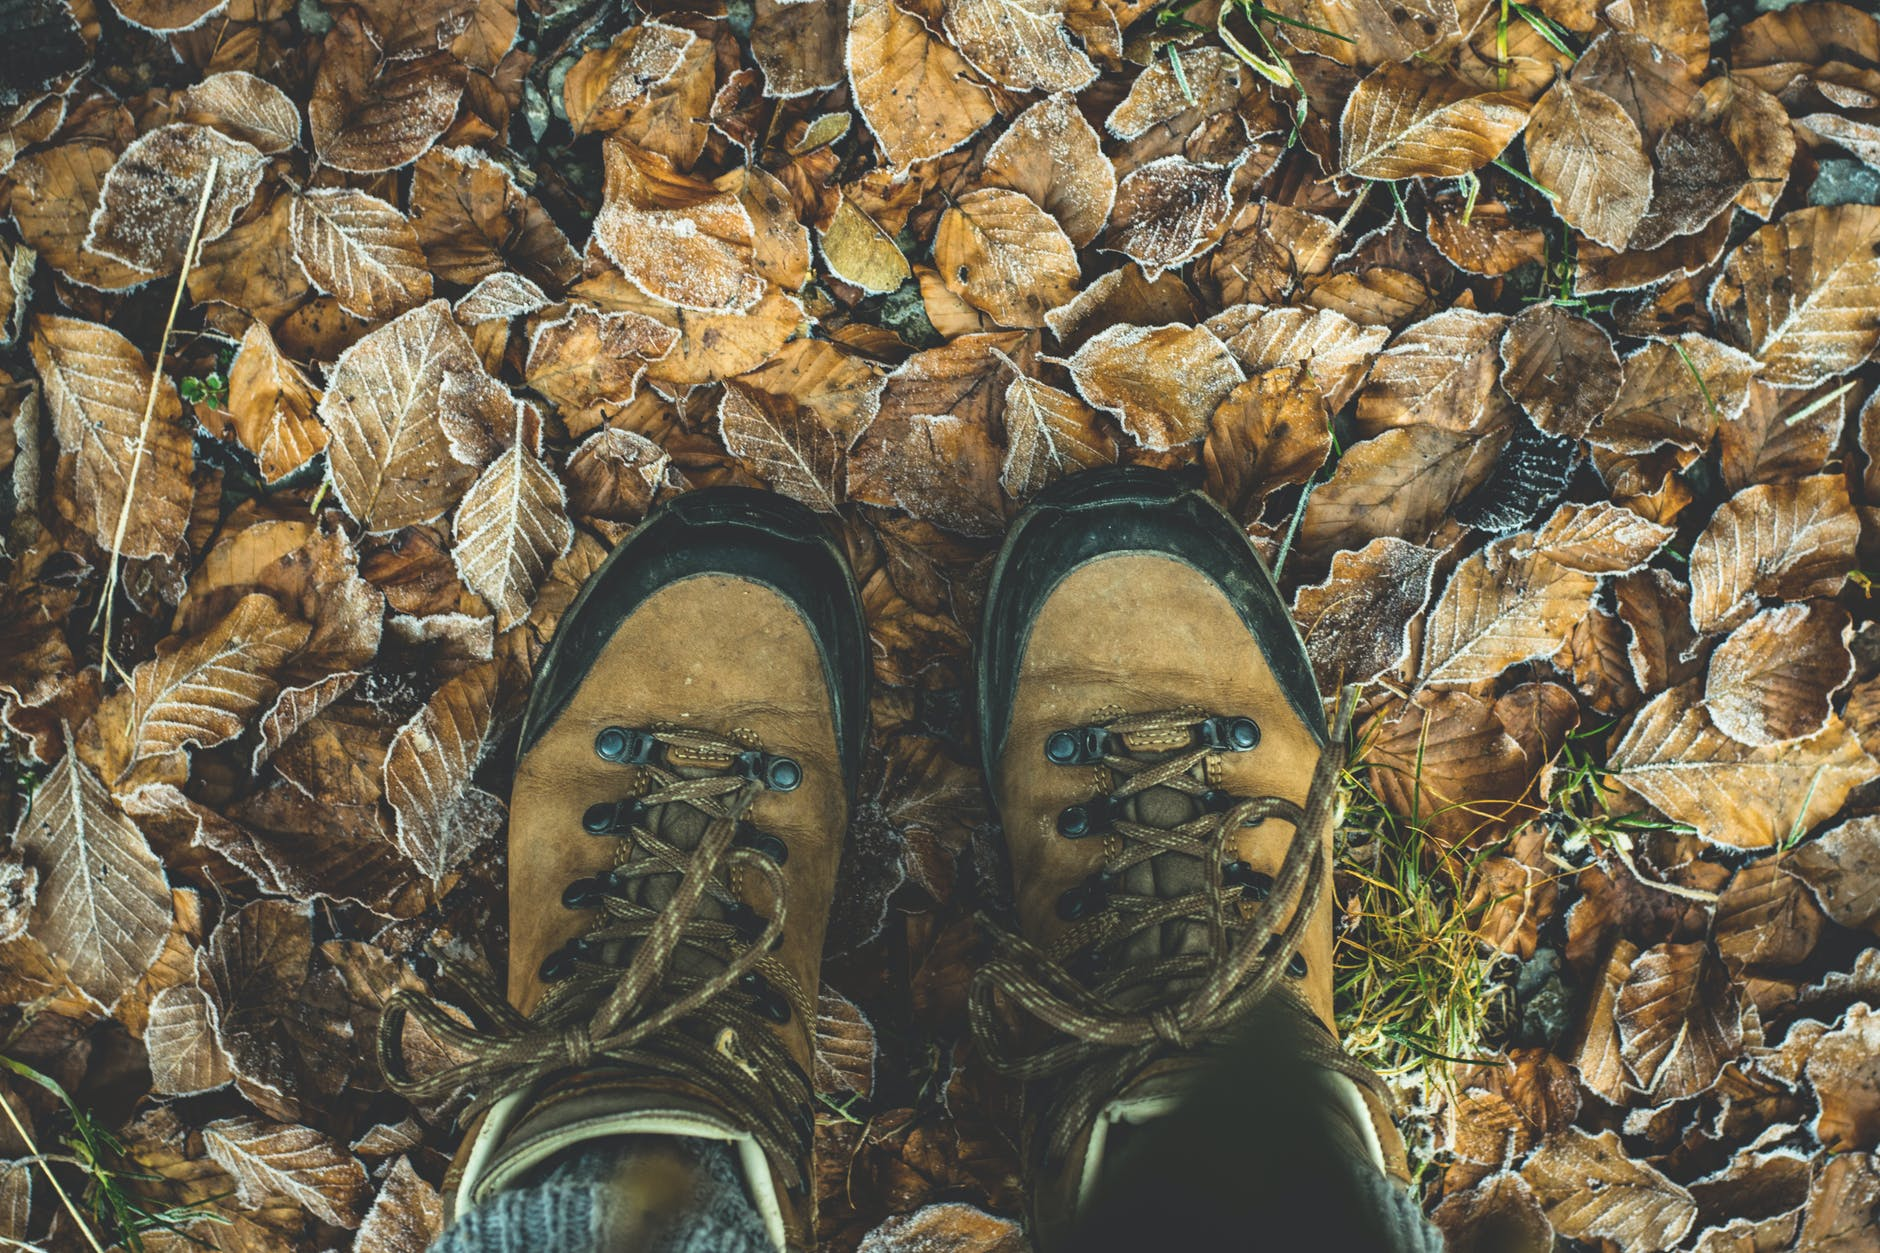 proper-boots-for-hiking